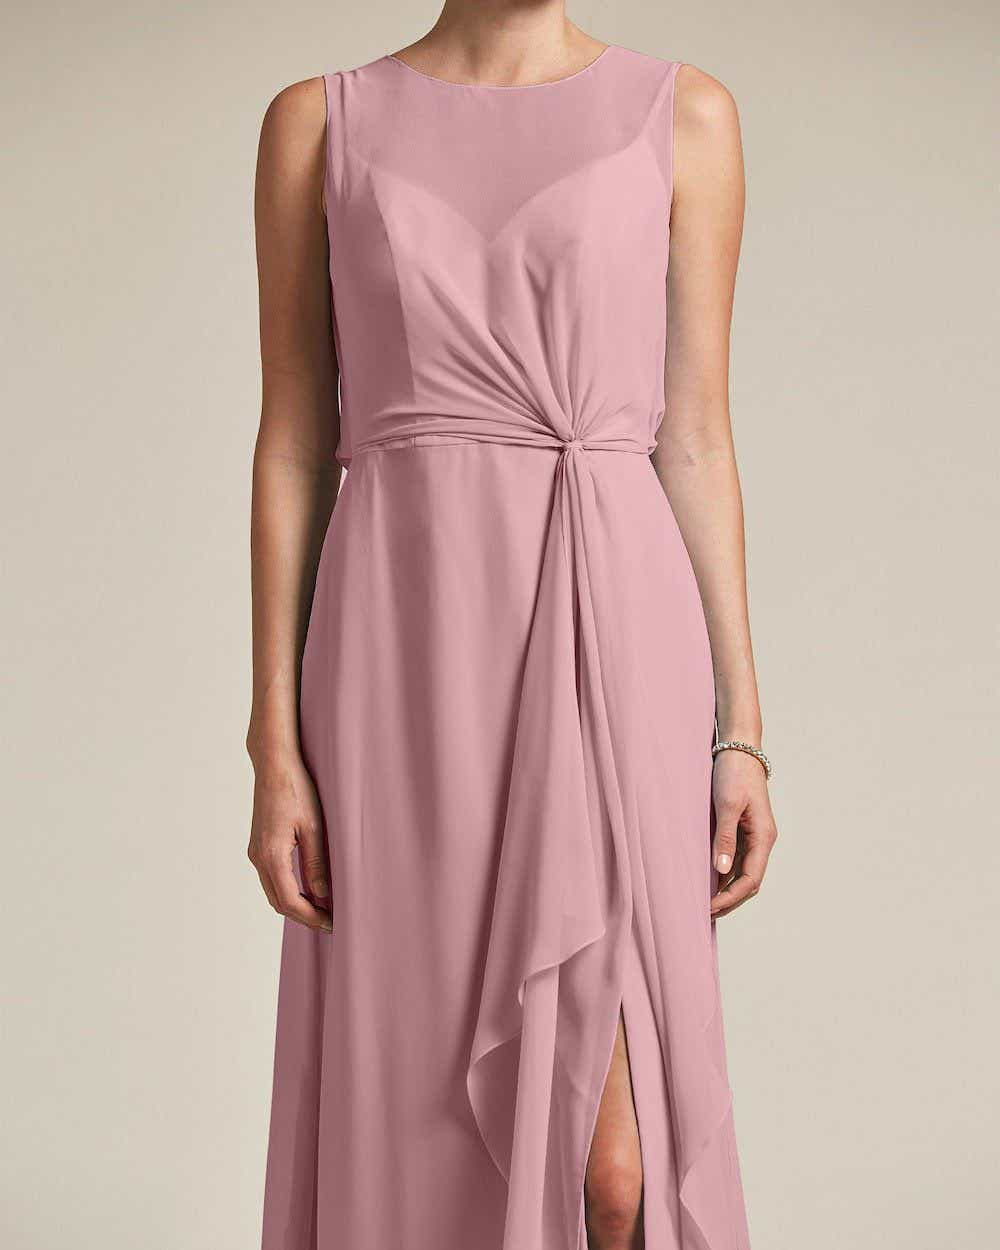 Illusion Style Boat Neck Two Piece Maxi Dress - Detail